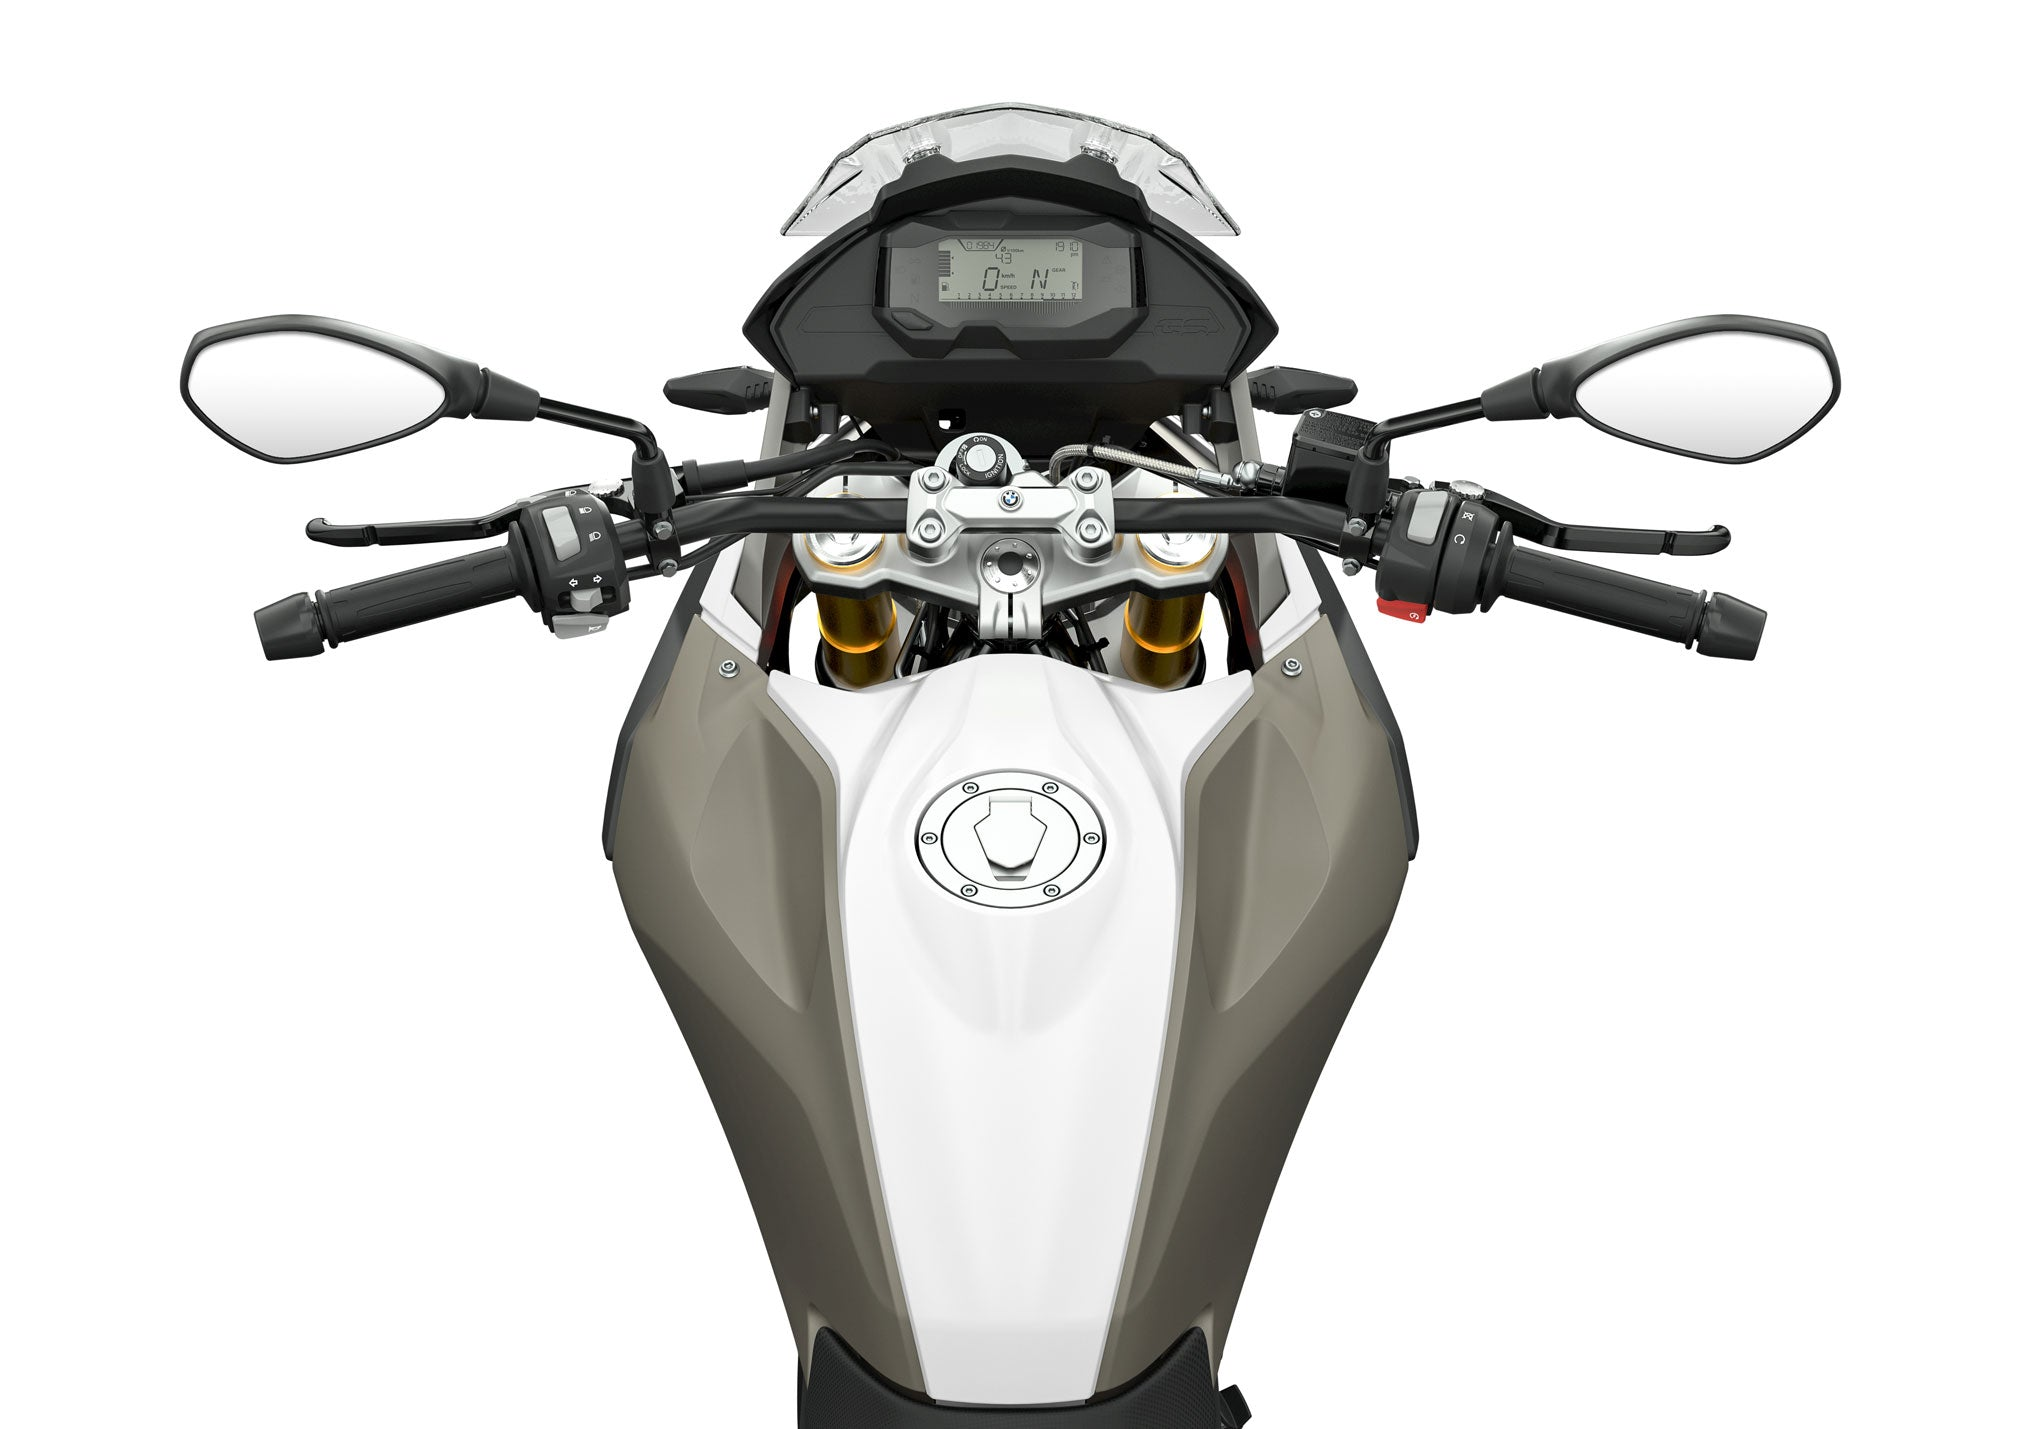 2021 BMW G 310 GS cockpit